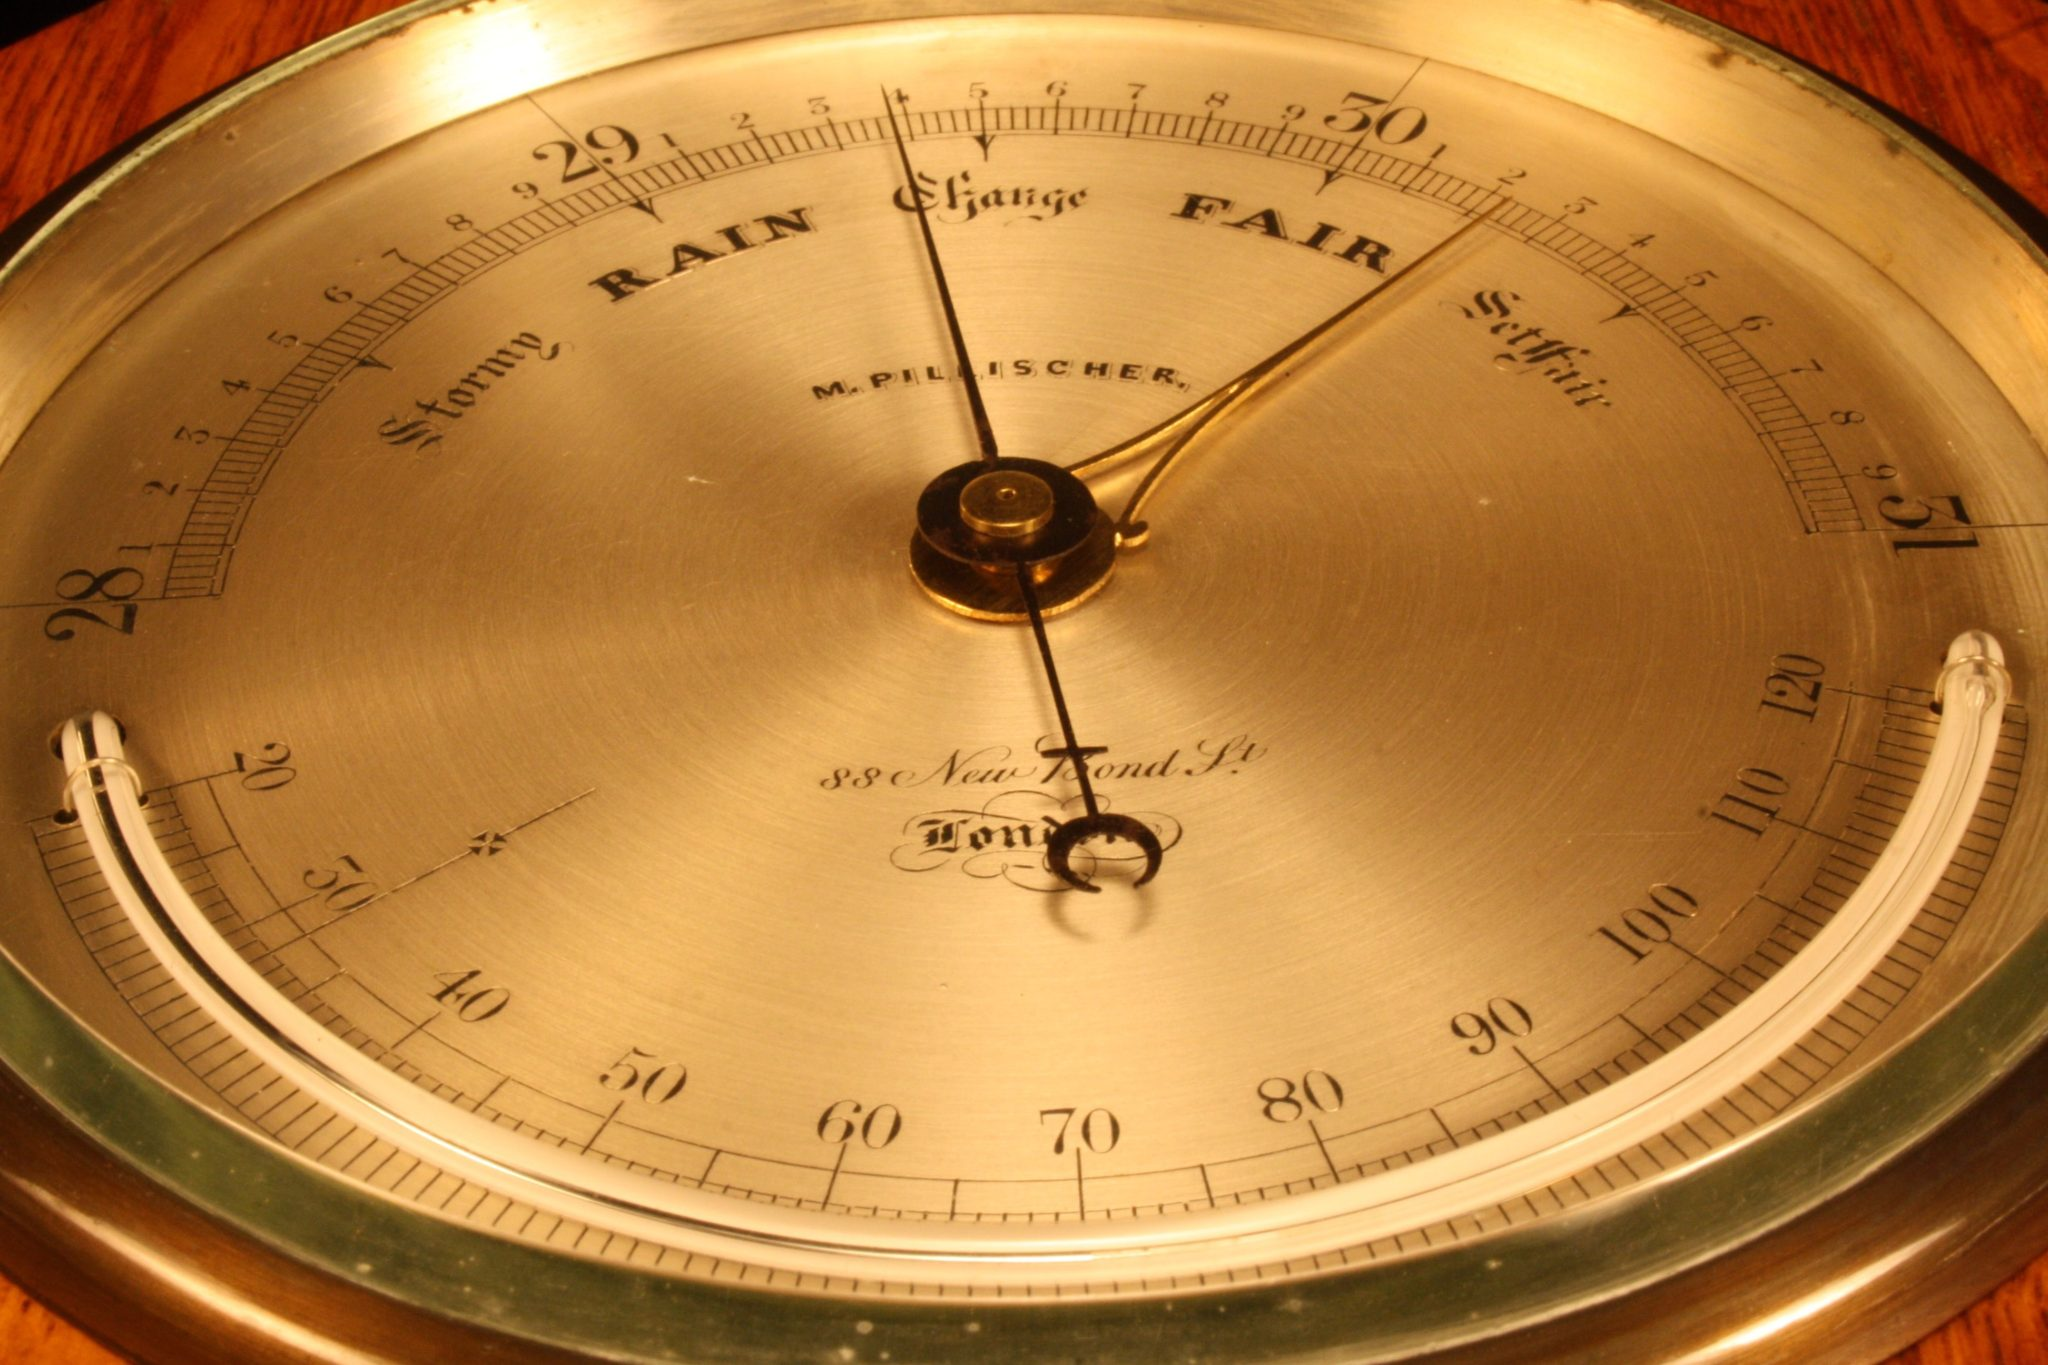 Image of Antique Aneroid Barometer by Pillischer